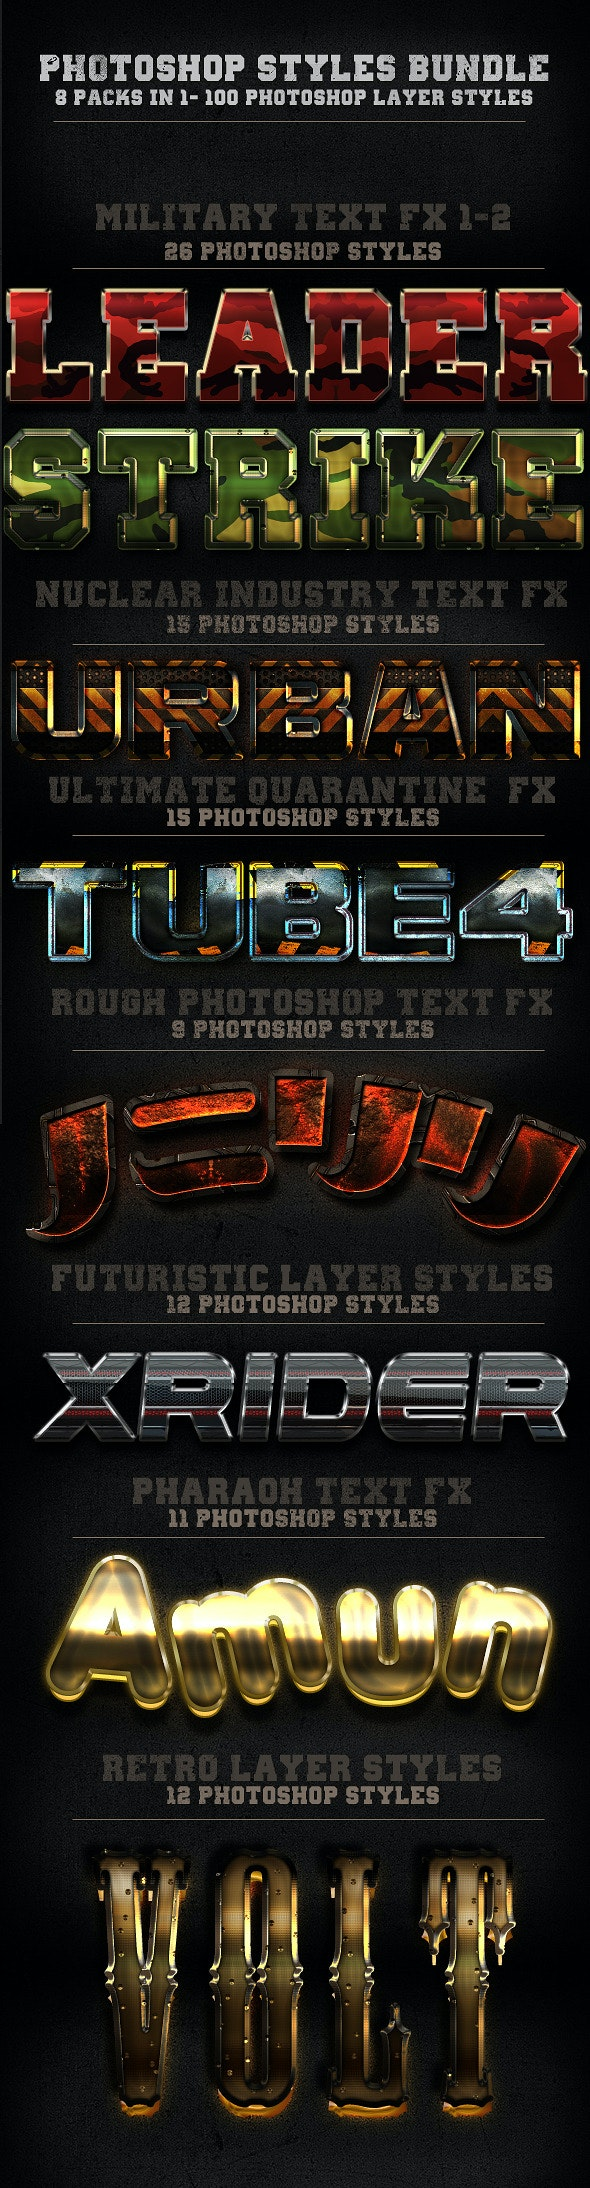 100 Photohop Styles - 8 In 1-The Bundle - Text Effects Styles